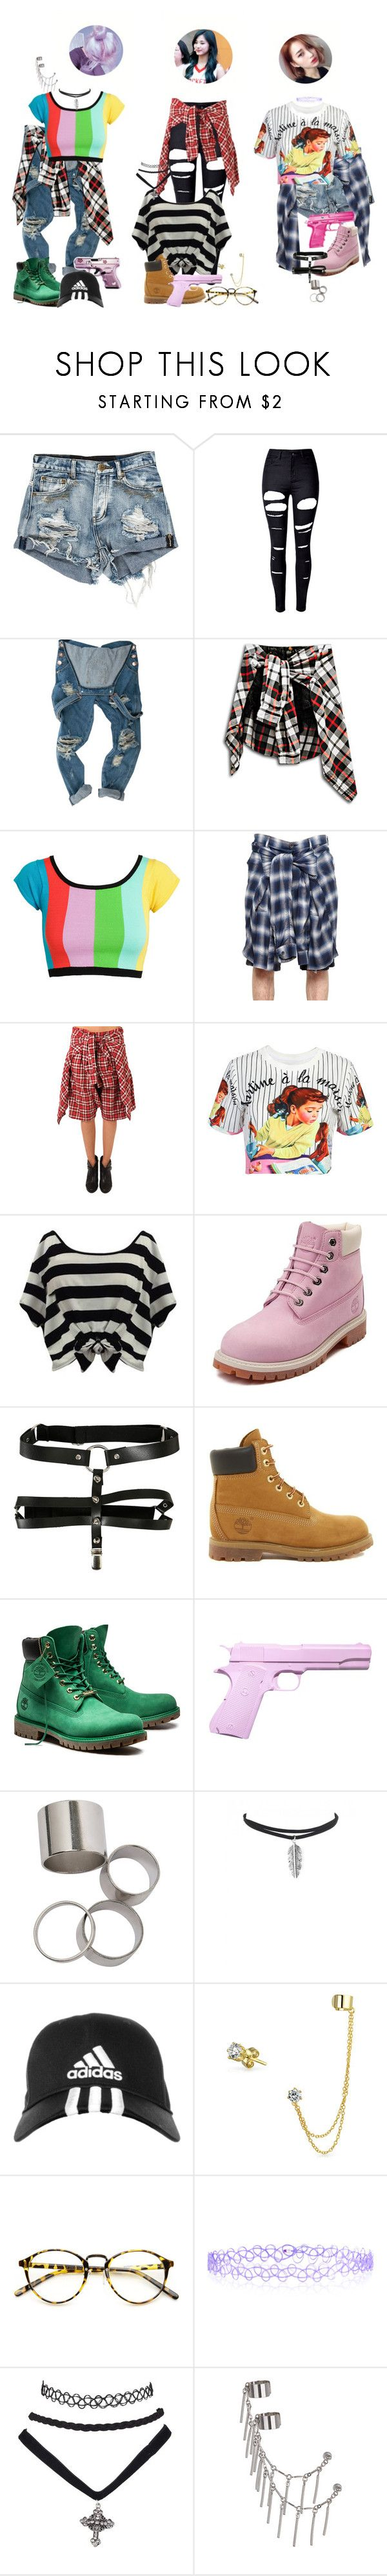 """😻 Purrfectas ""That's My Girl"" @ Music Bank"" by purrfectas ❤ liked on Polyvore featuring WithChic, Jeremy Scott, Maison Mihara Yasuhiro, R13, Piper Lane, Timberland, Hello Kitty, L'ÉCLAIREUR, adidas and Bling Jewelry"